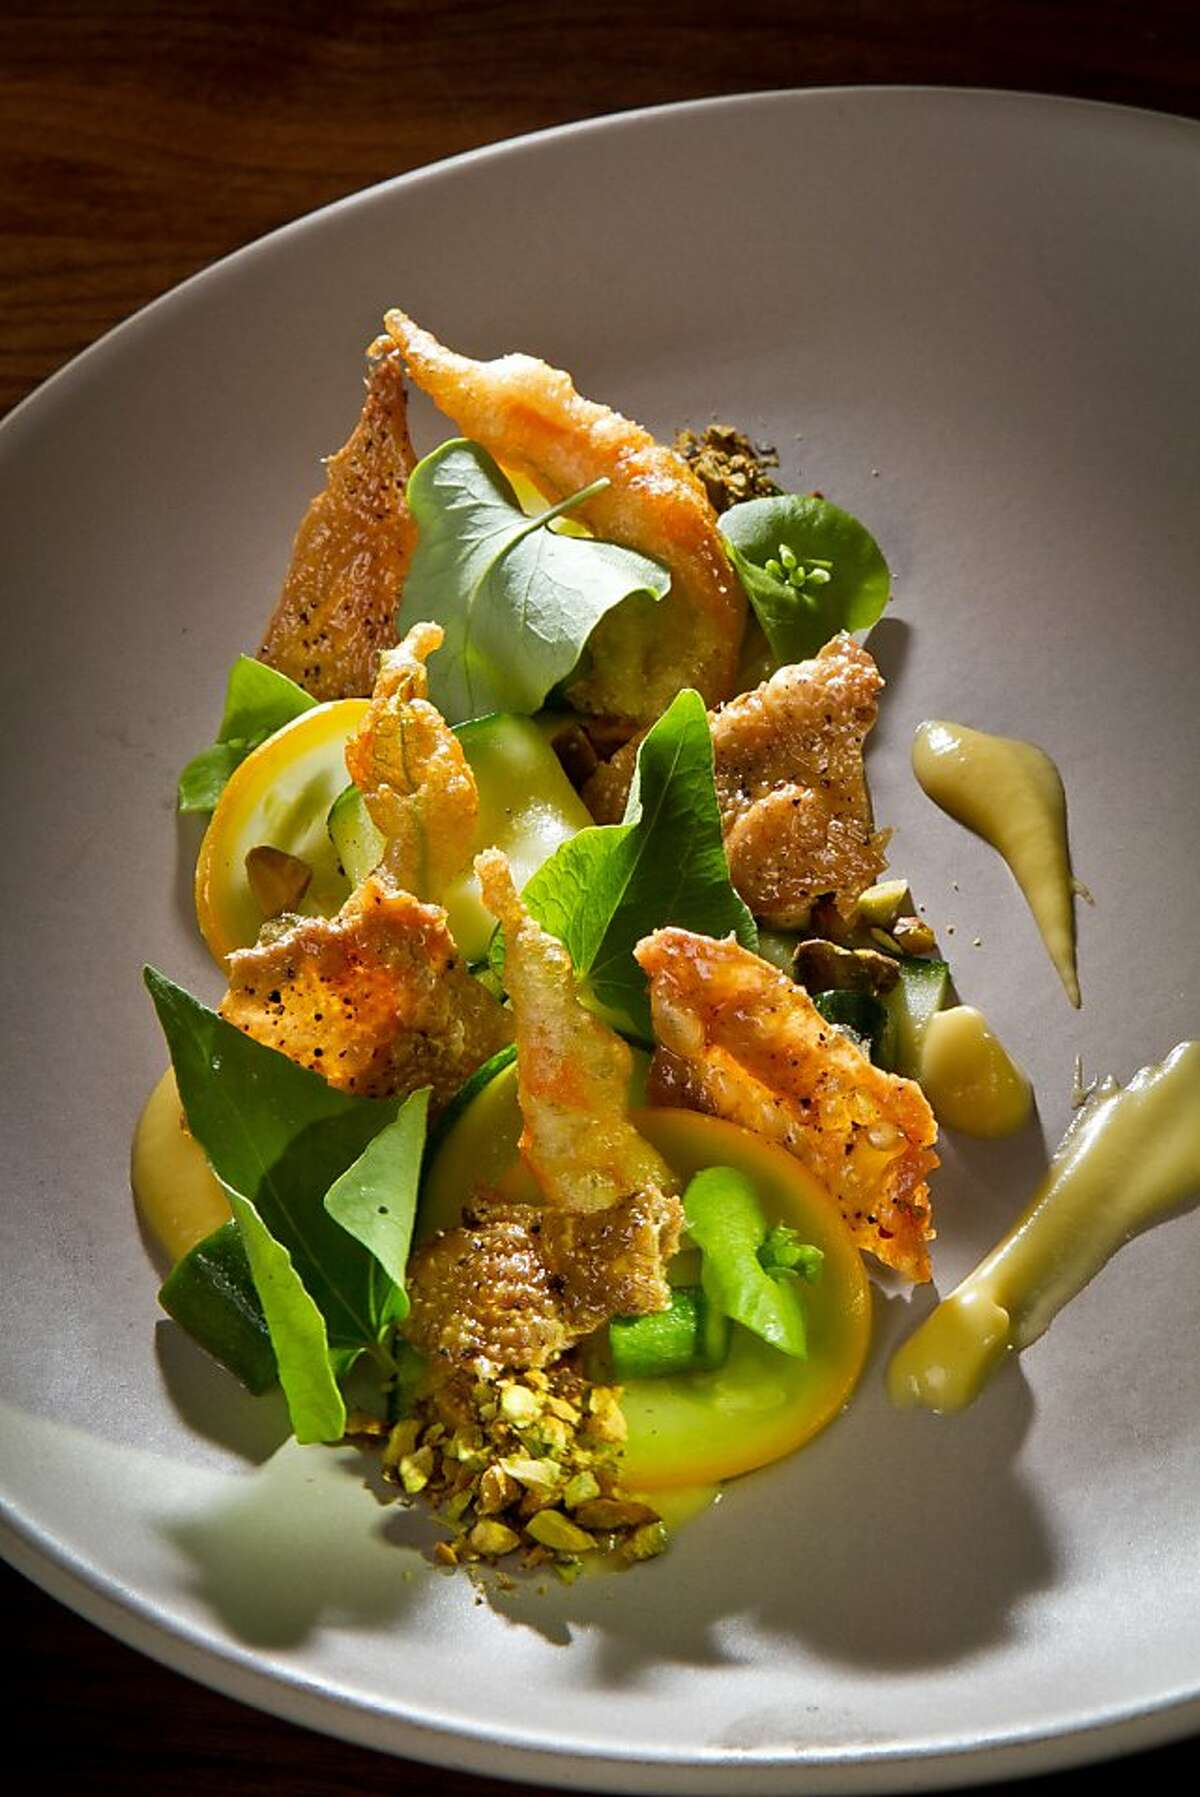 The Squash with Hen Cracklings at Central Kitchen in San Francisco, Calif., are seen Thursday, July 18th, 2012.